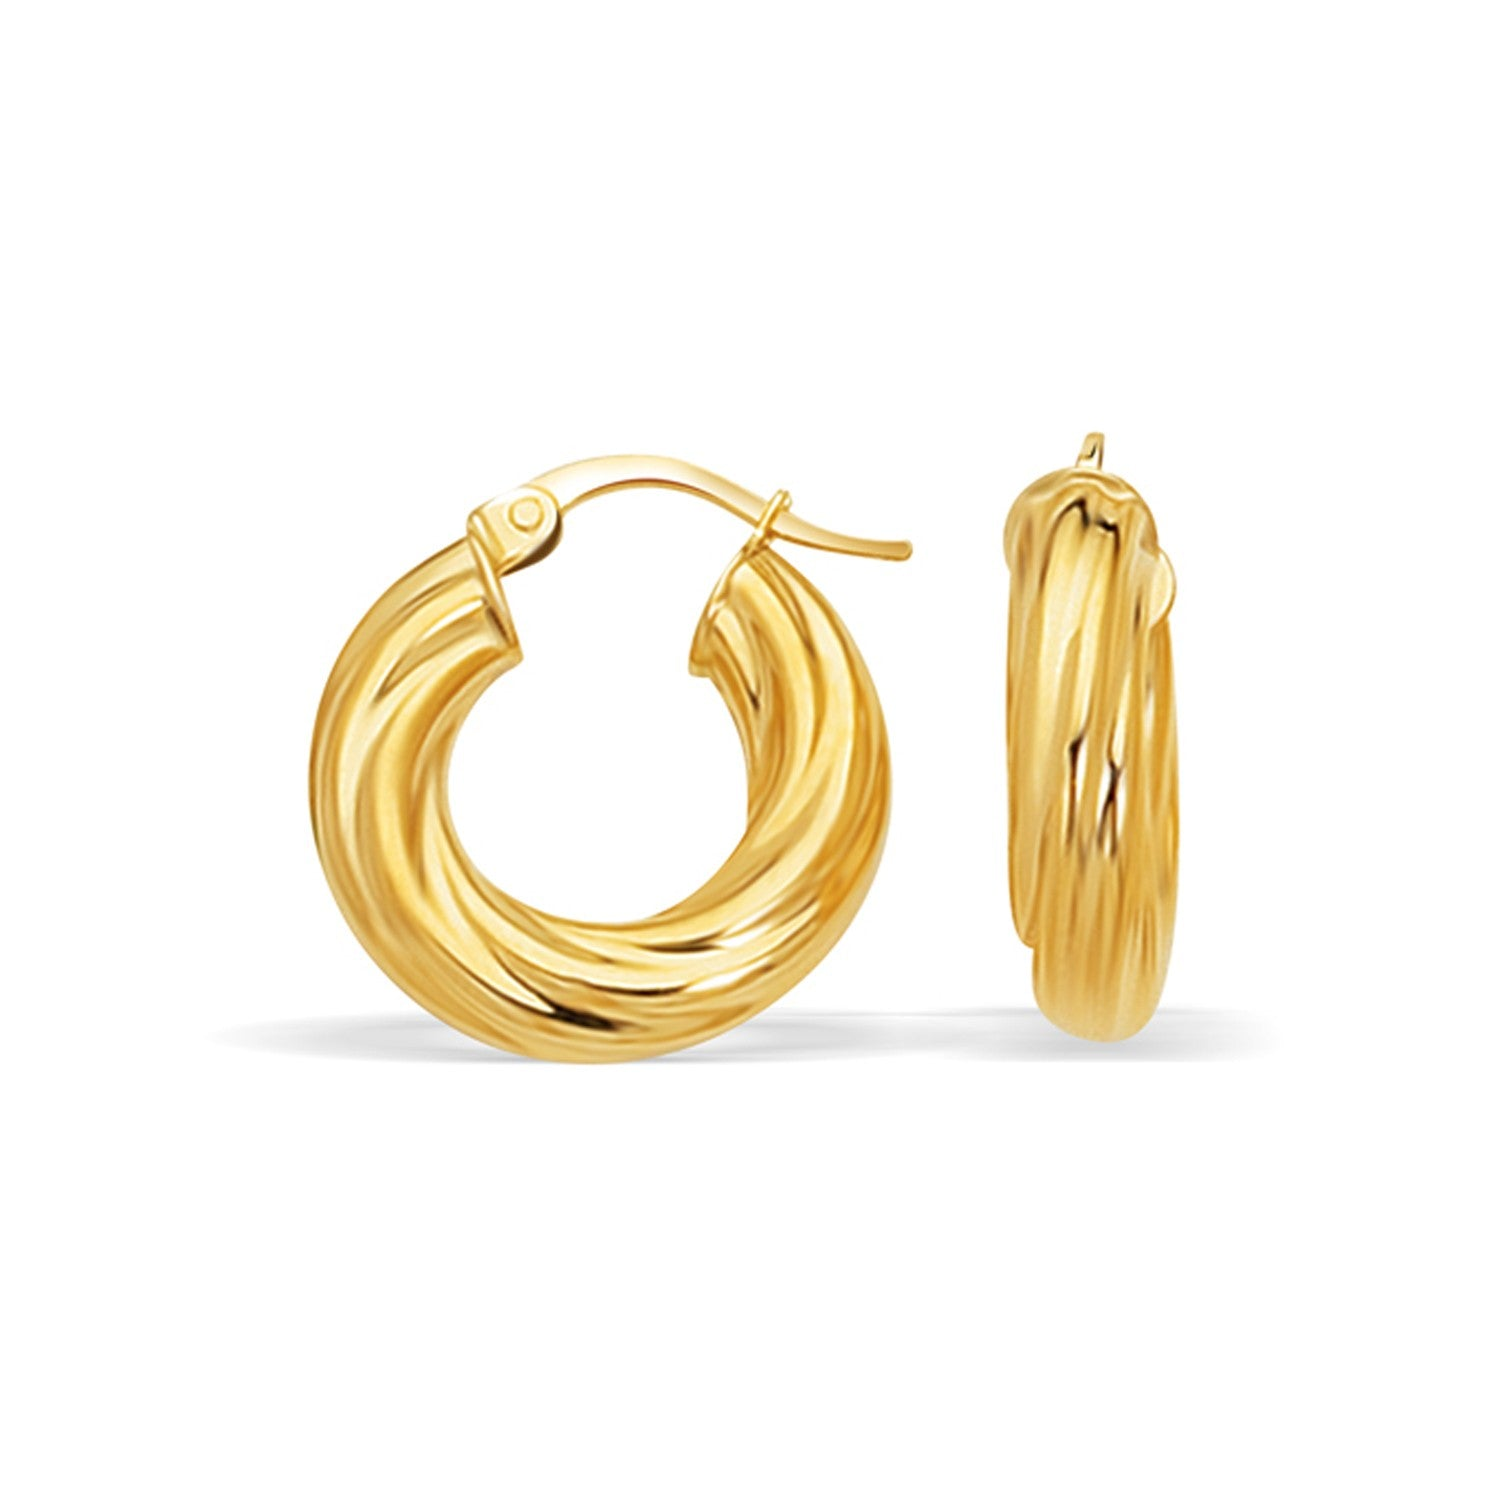 14K Yellow Gold Fancy Twist Hoop Earrings (7/8 inch Diameter)